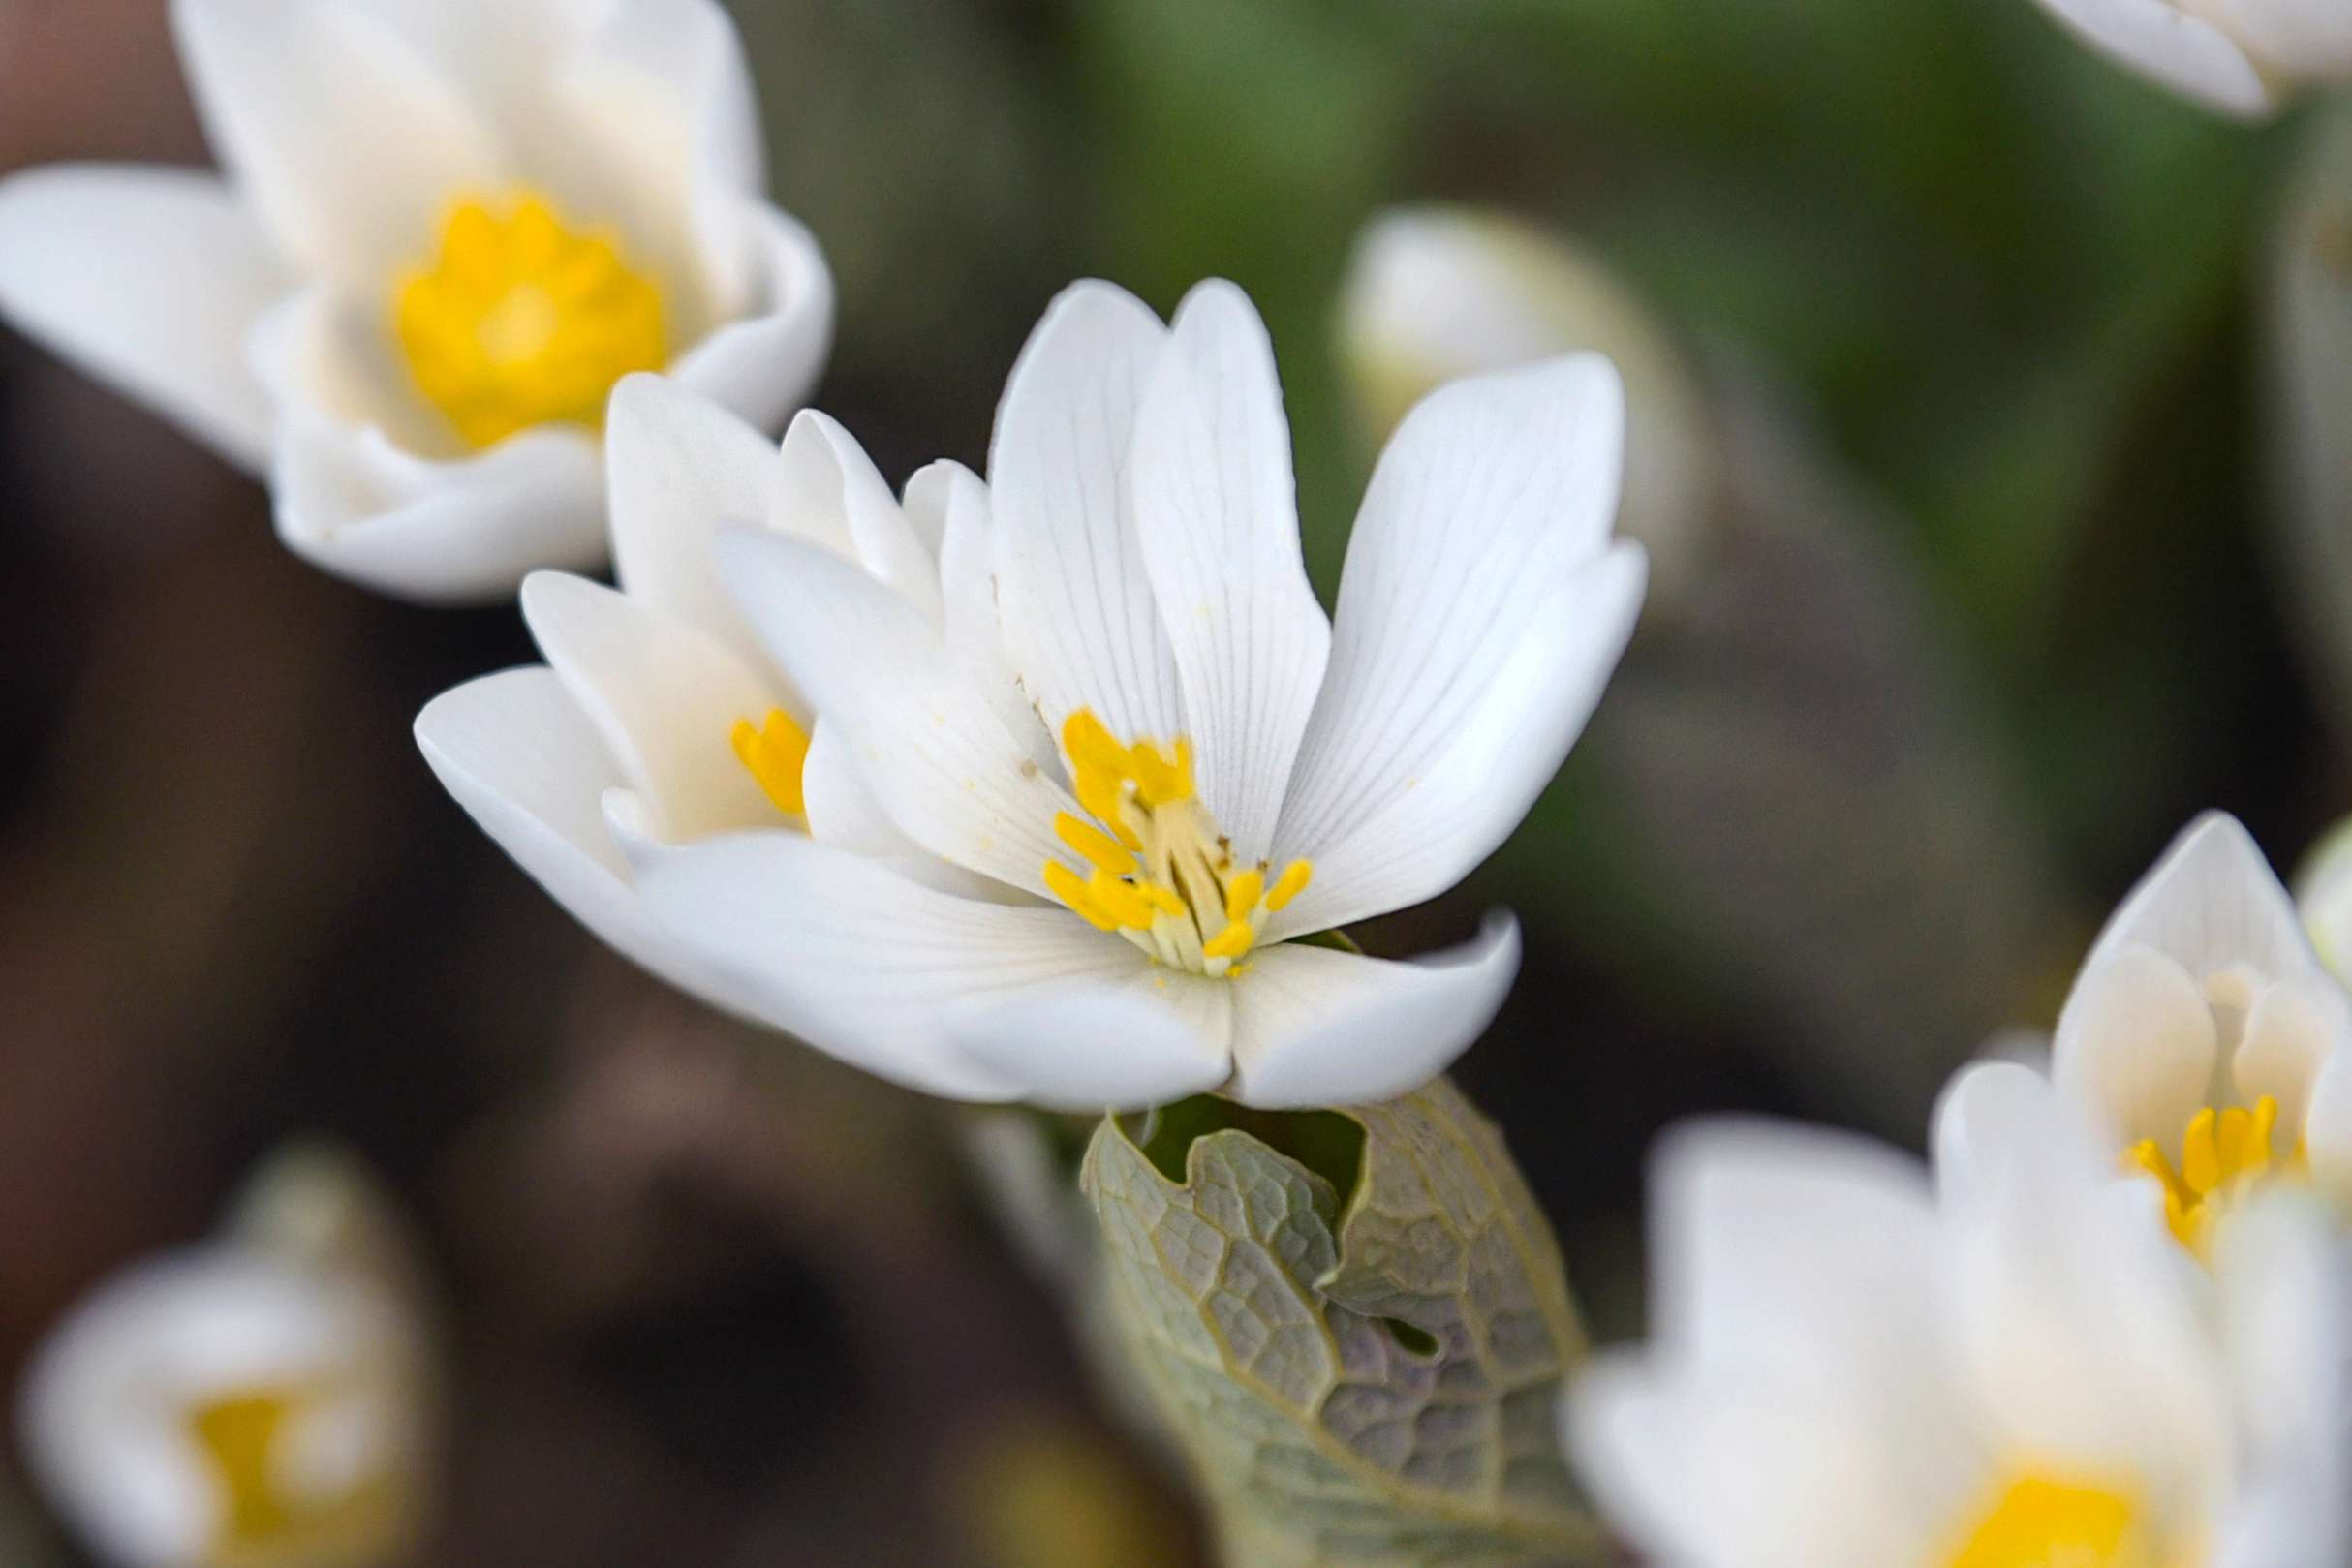 Bloodroot flowers with small white petals and yellow stamen closeup